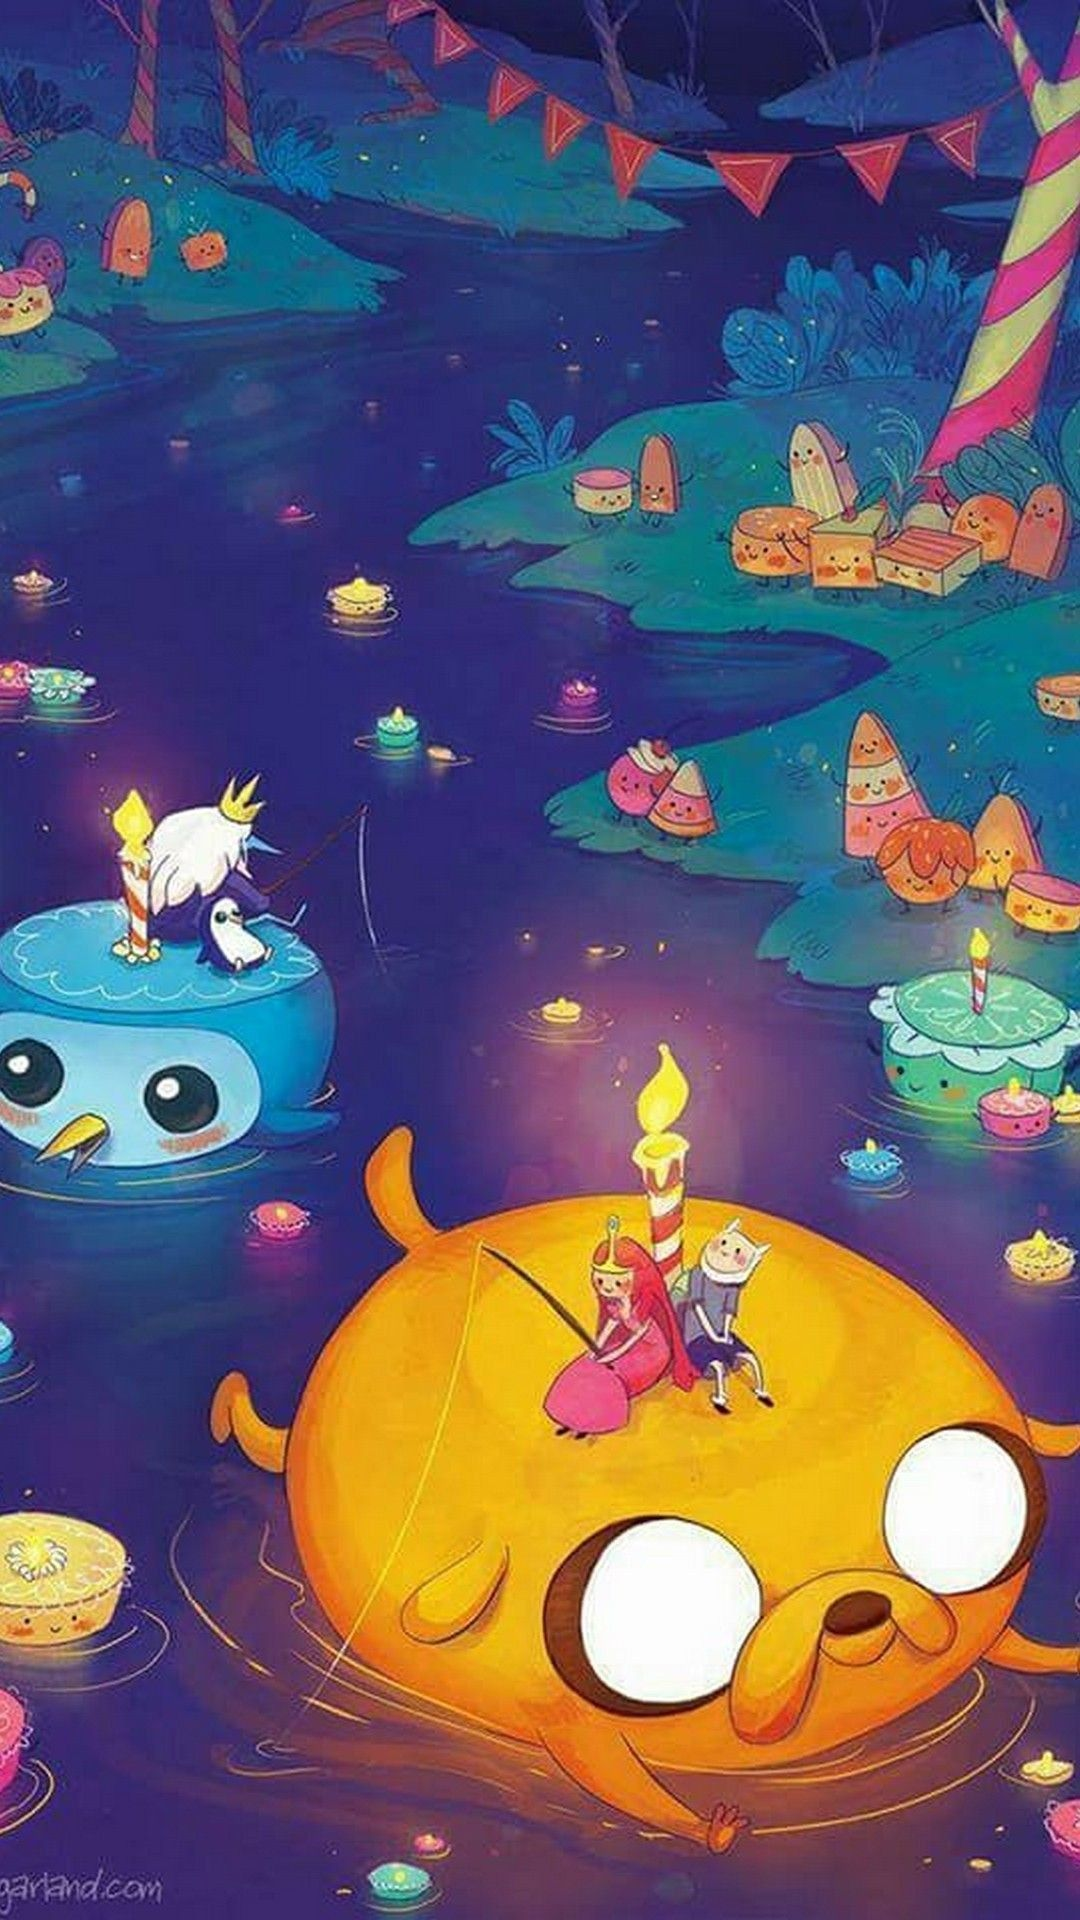 Aesthetic Adventure Time Hd Wallpaper Android Adventure Time Wallpaper Adventure Time Iphone Wallpaper Iphone Wallpaper